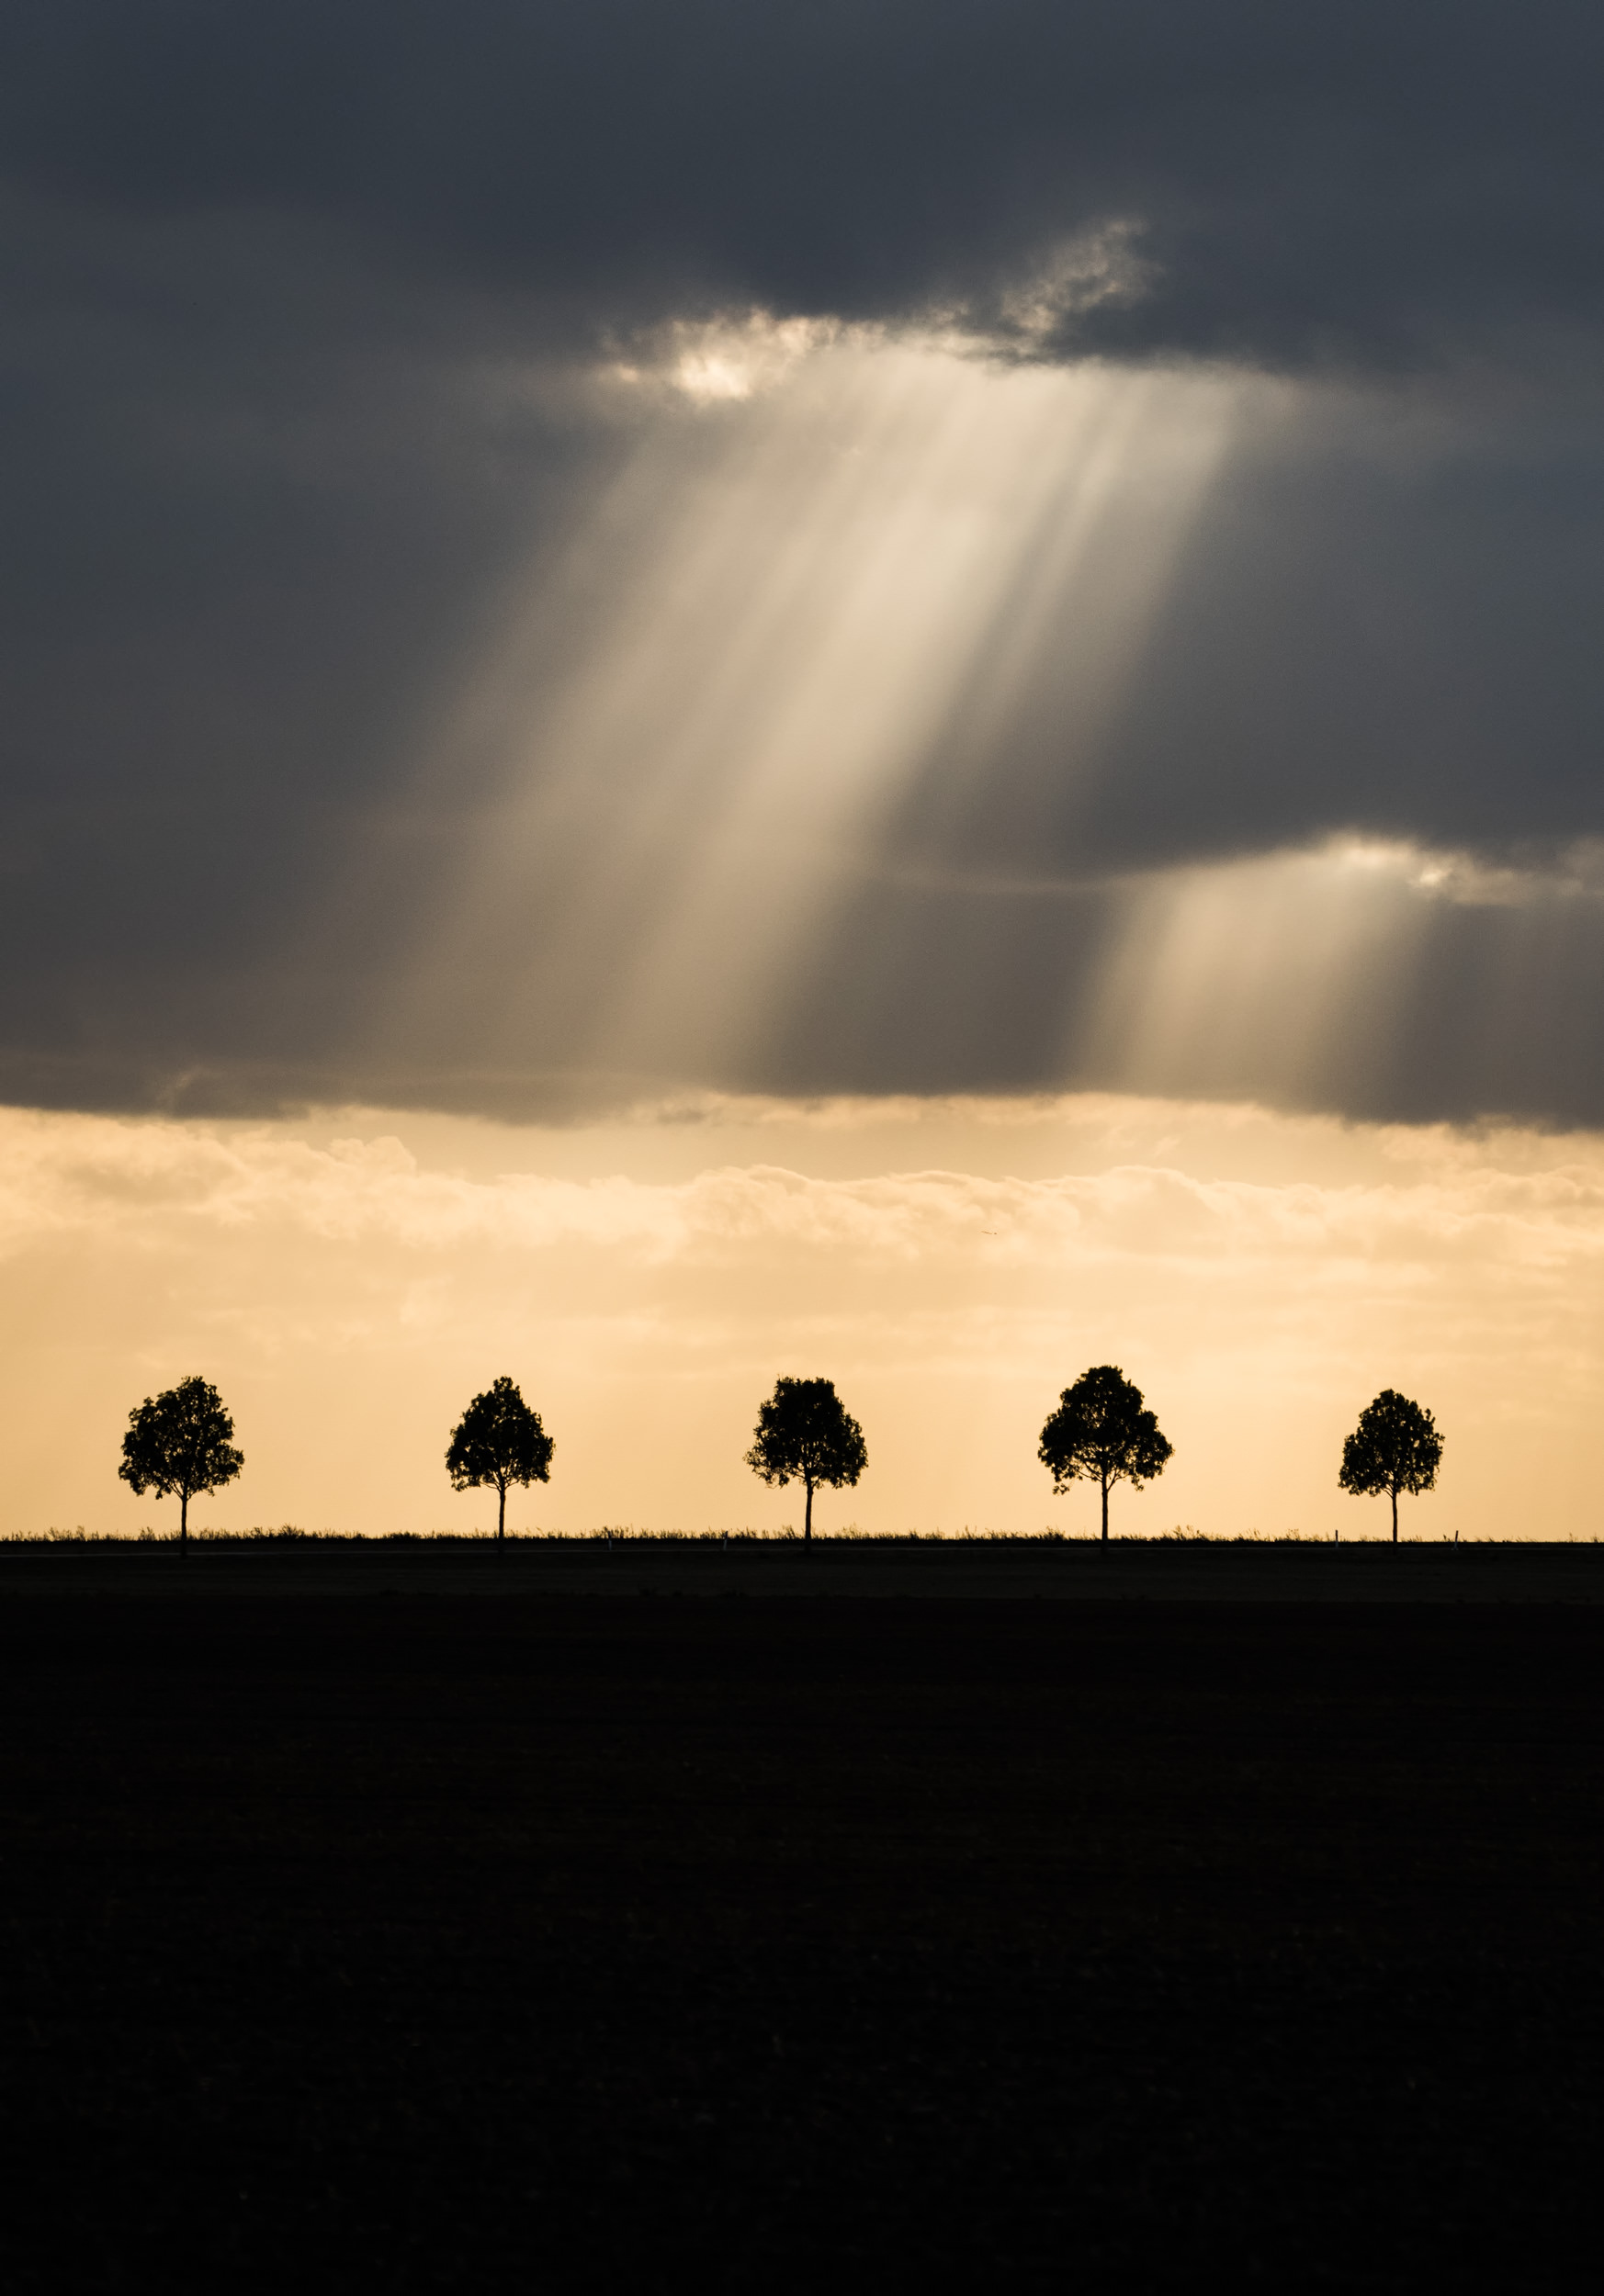 Sunbeams - Saxony, Germany - Landscape Photography